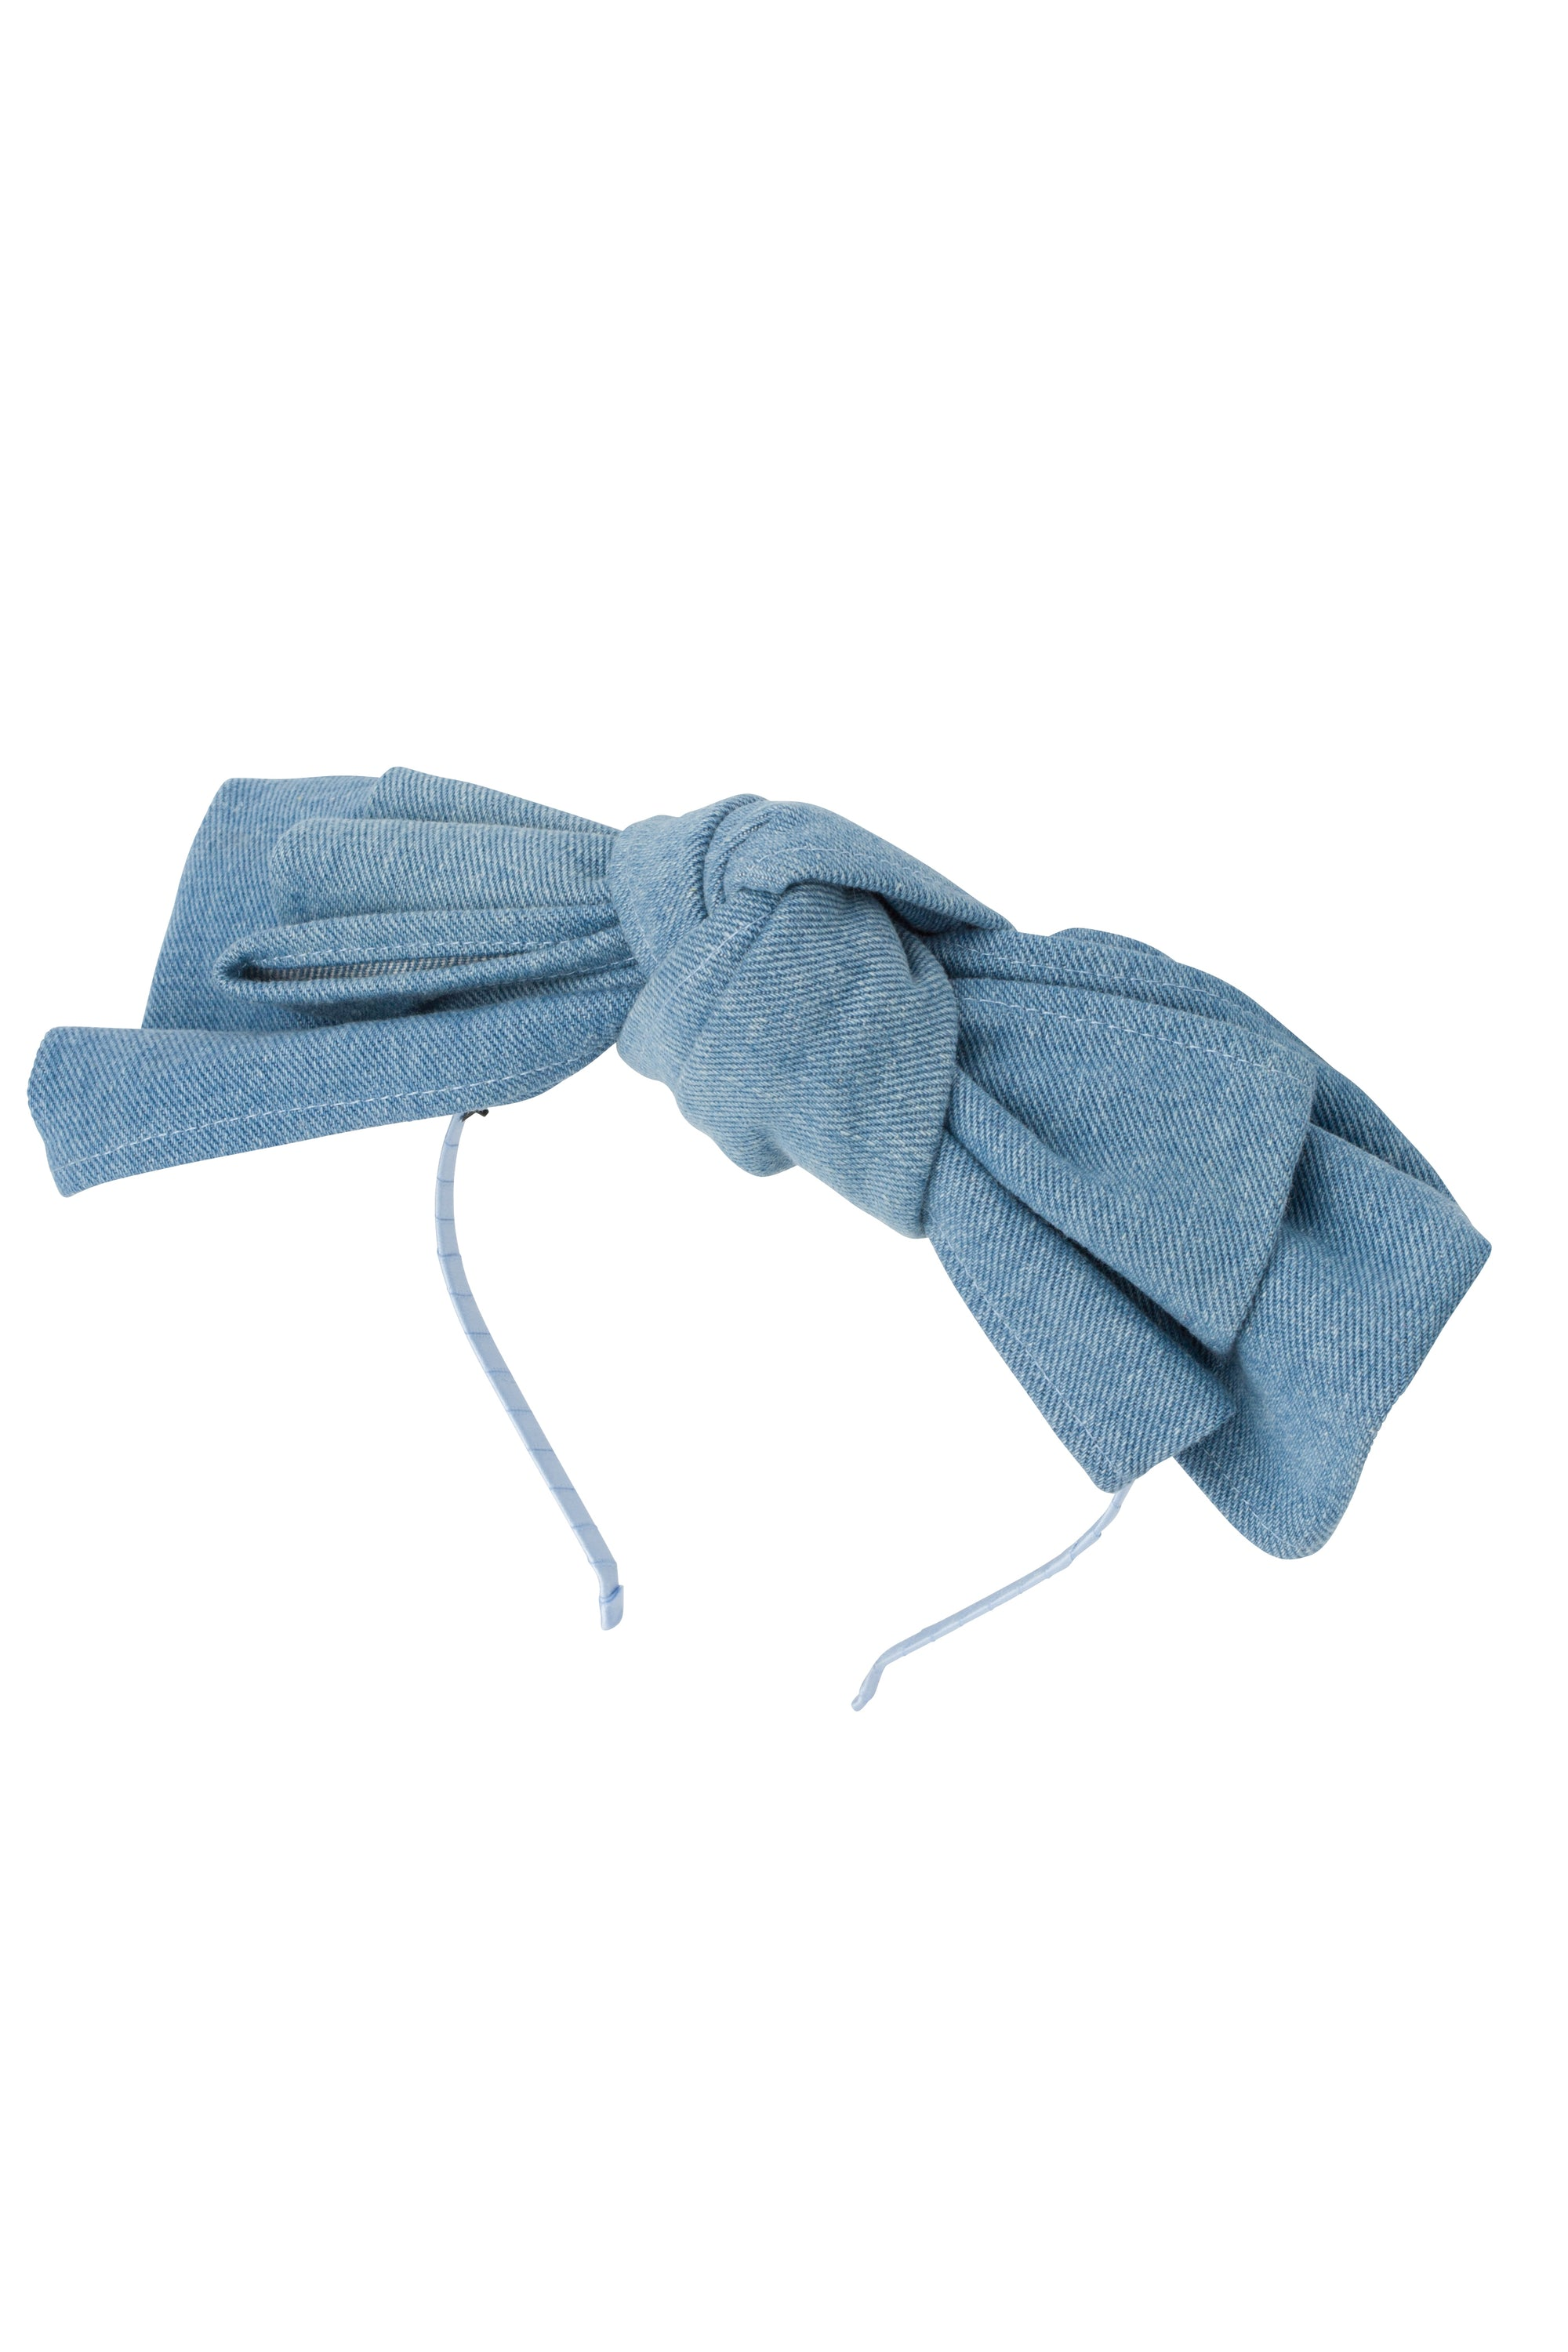 Floppy Denim Headband - Sky Blue Denim - PROJECT 6, modest fashion